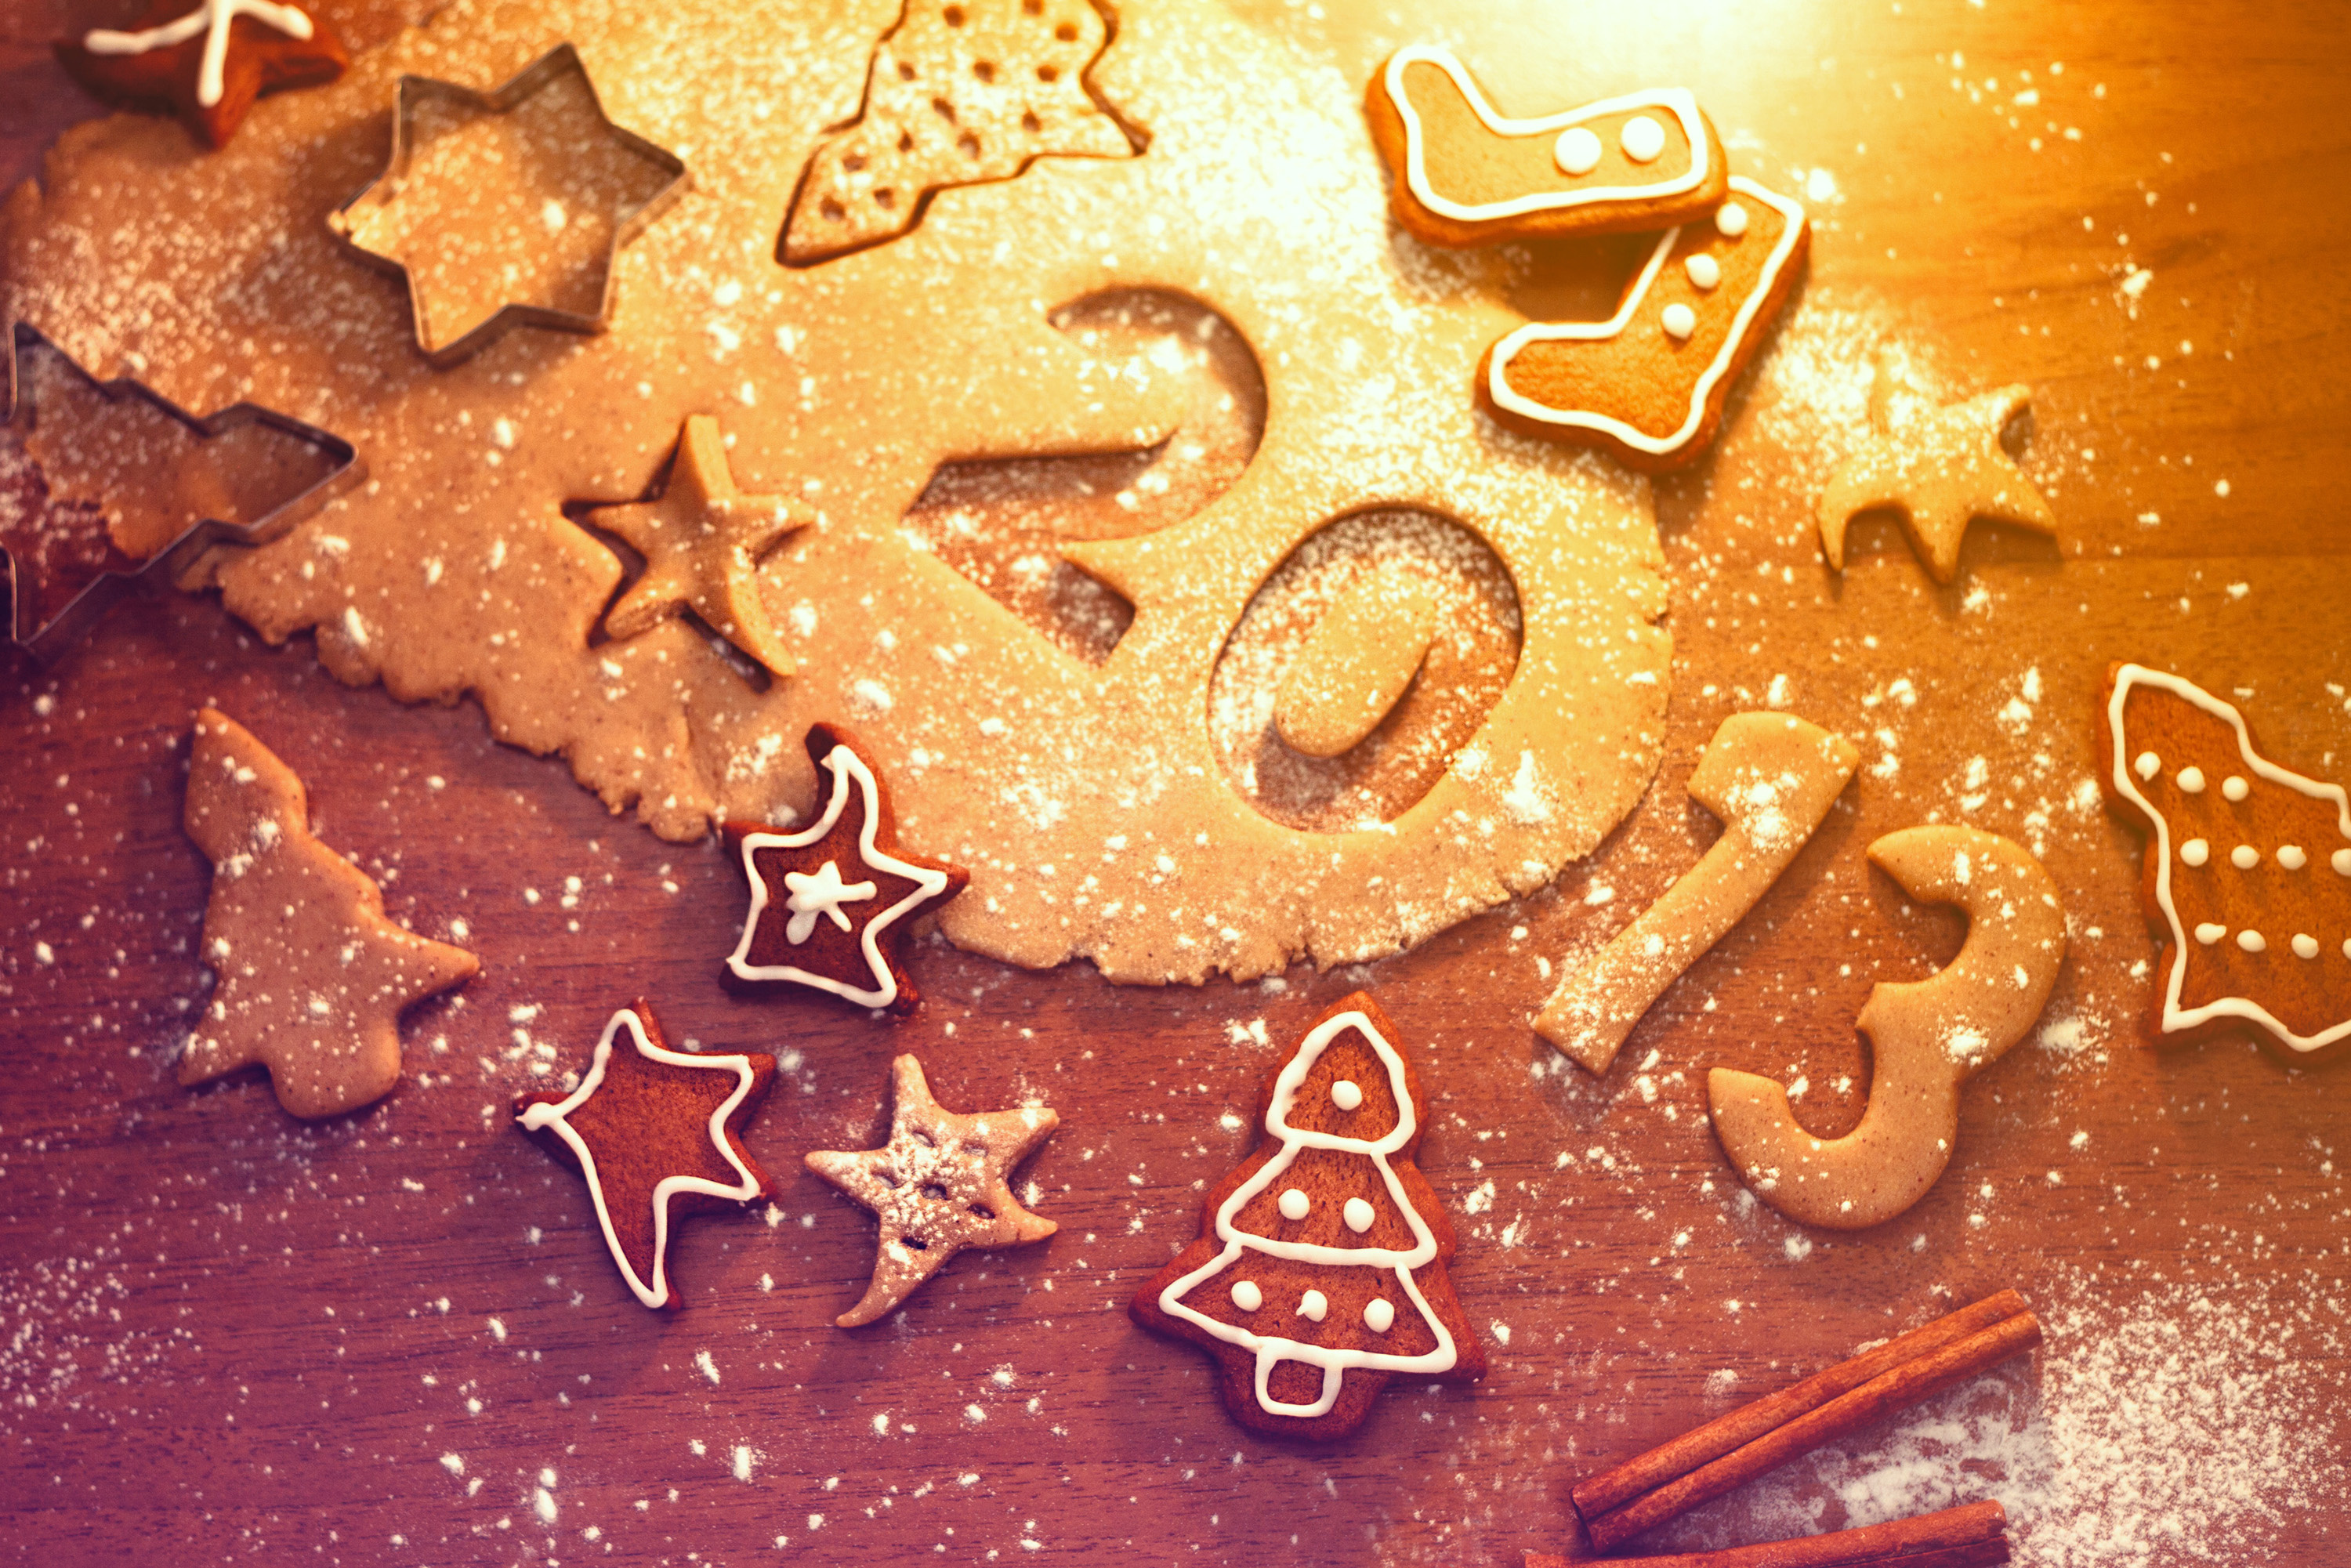 Hd wallpaper happy new year 2013 with star